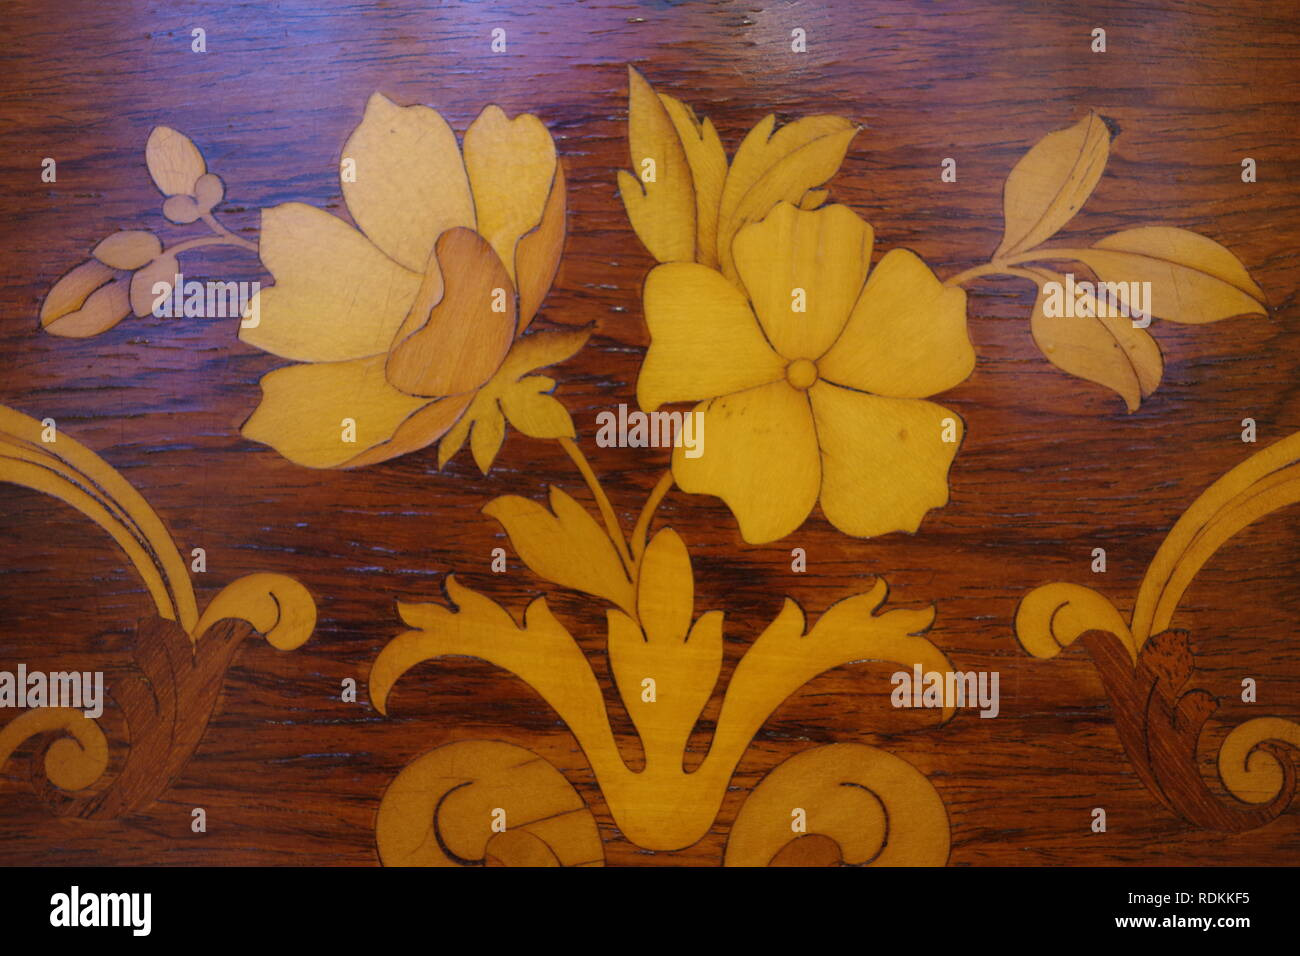 Wooden Inlayed Decorated Panel of an Edwardian Upright Piano of Rose Wood. Exeter, Devon, UK. - Stock Image